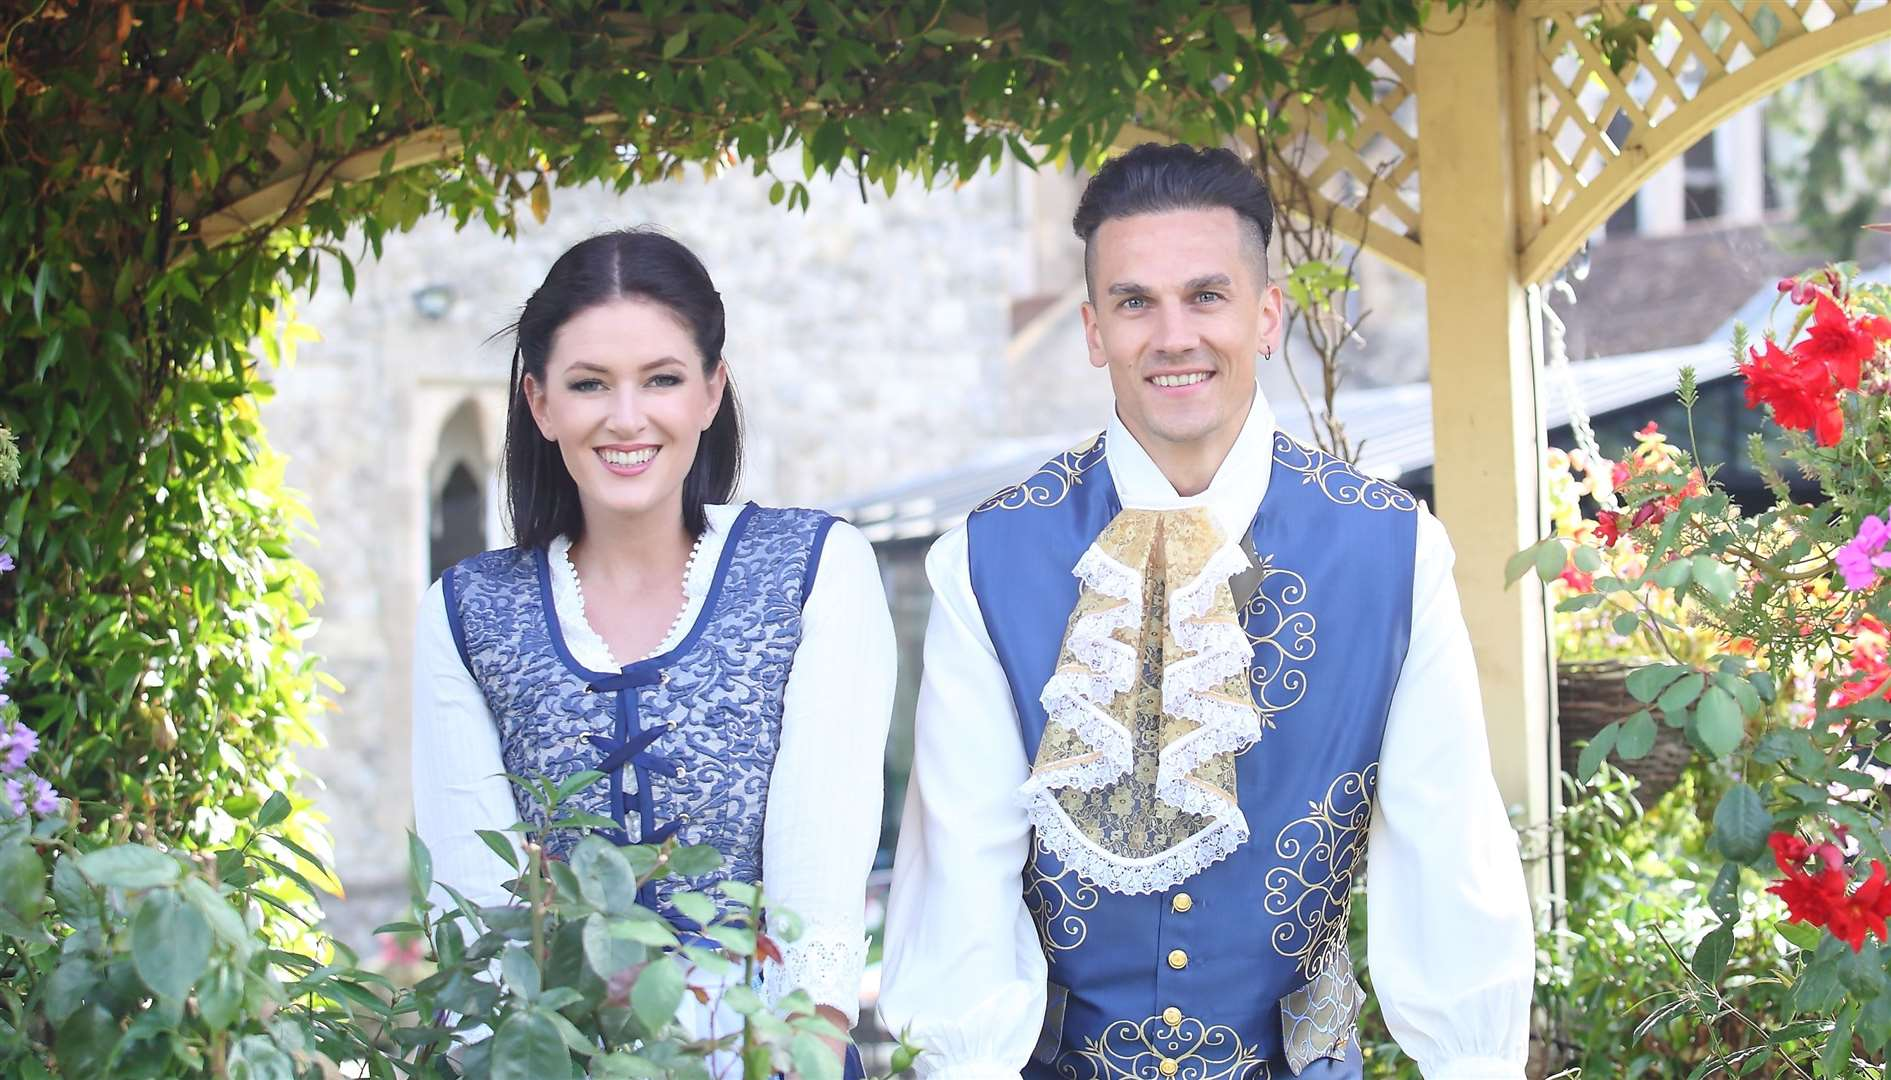 Ashleigh Cavanagh as Belle and Aaron Sidwell as Prince Marius or the Beast